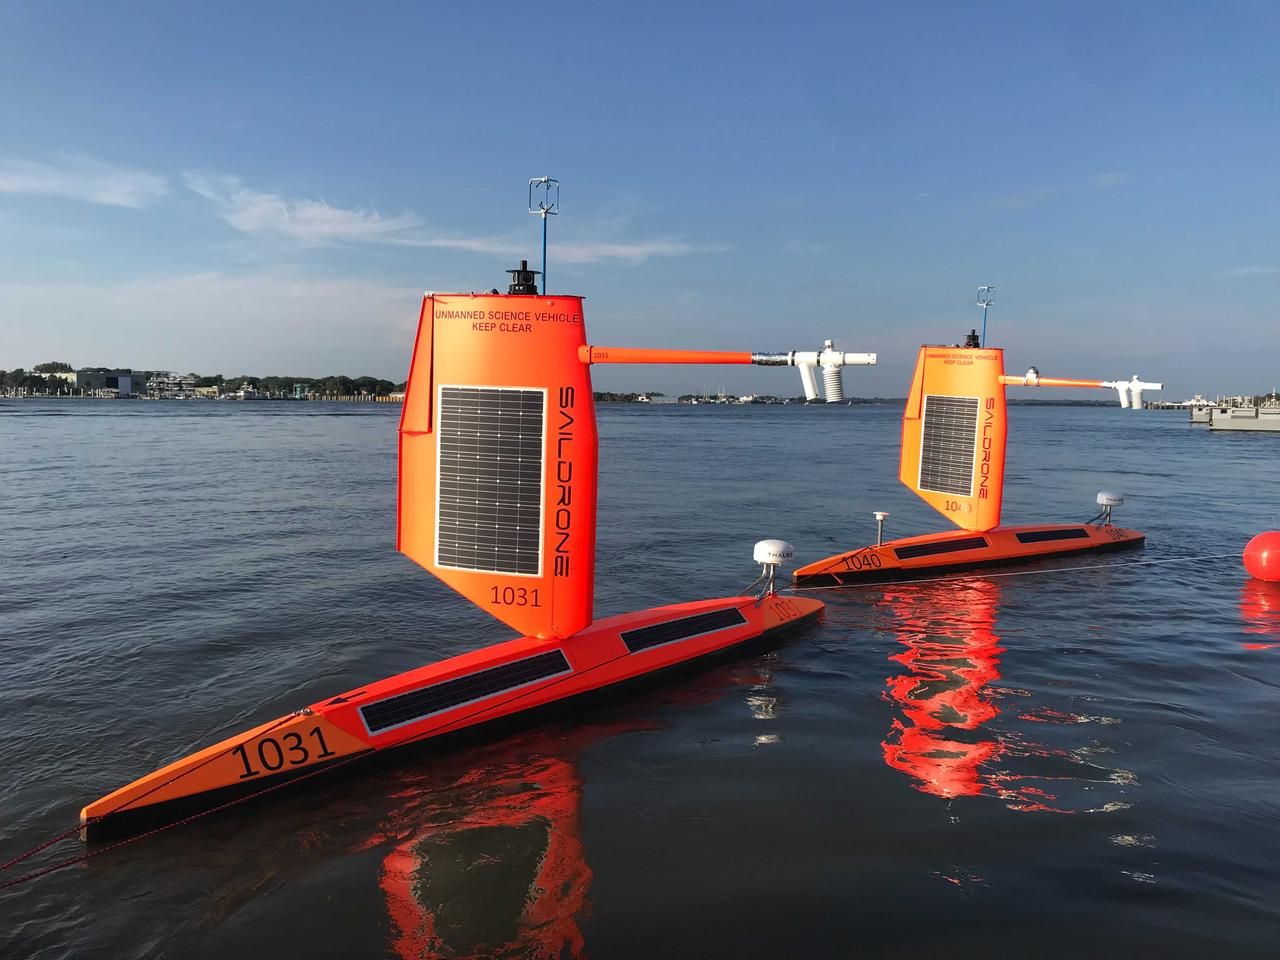 A small fleet of Saildrone Explorers was deployed from Jacksonville a few months ago to monitor the 2021 Atlantic Ocean hurricane season, and one of them has now captured video footage from inside the eye of a Category 4 hurricane